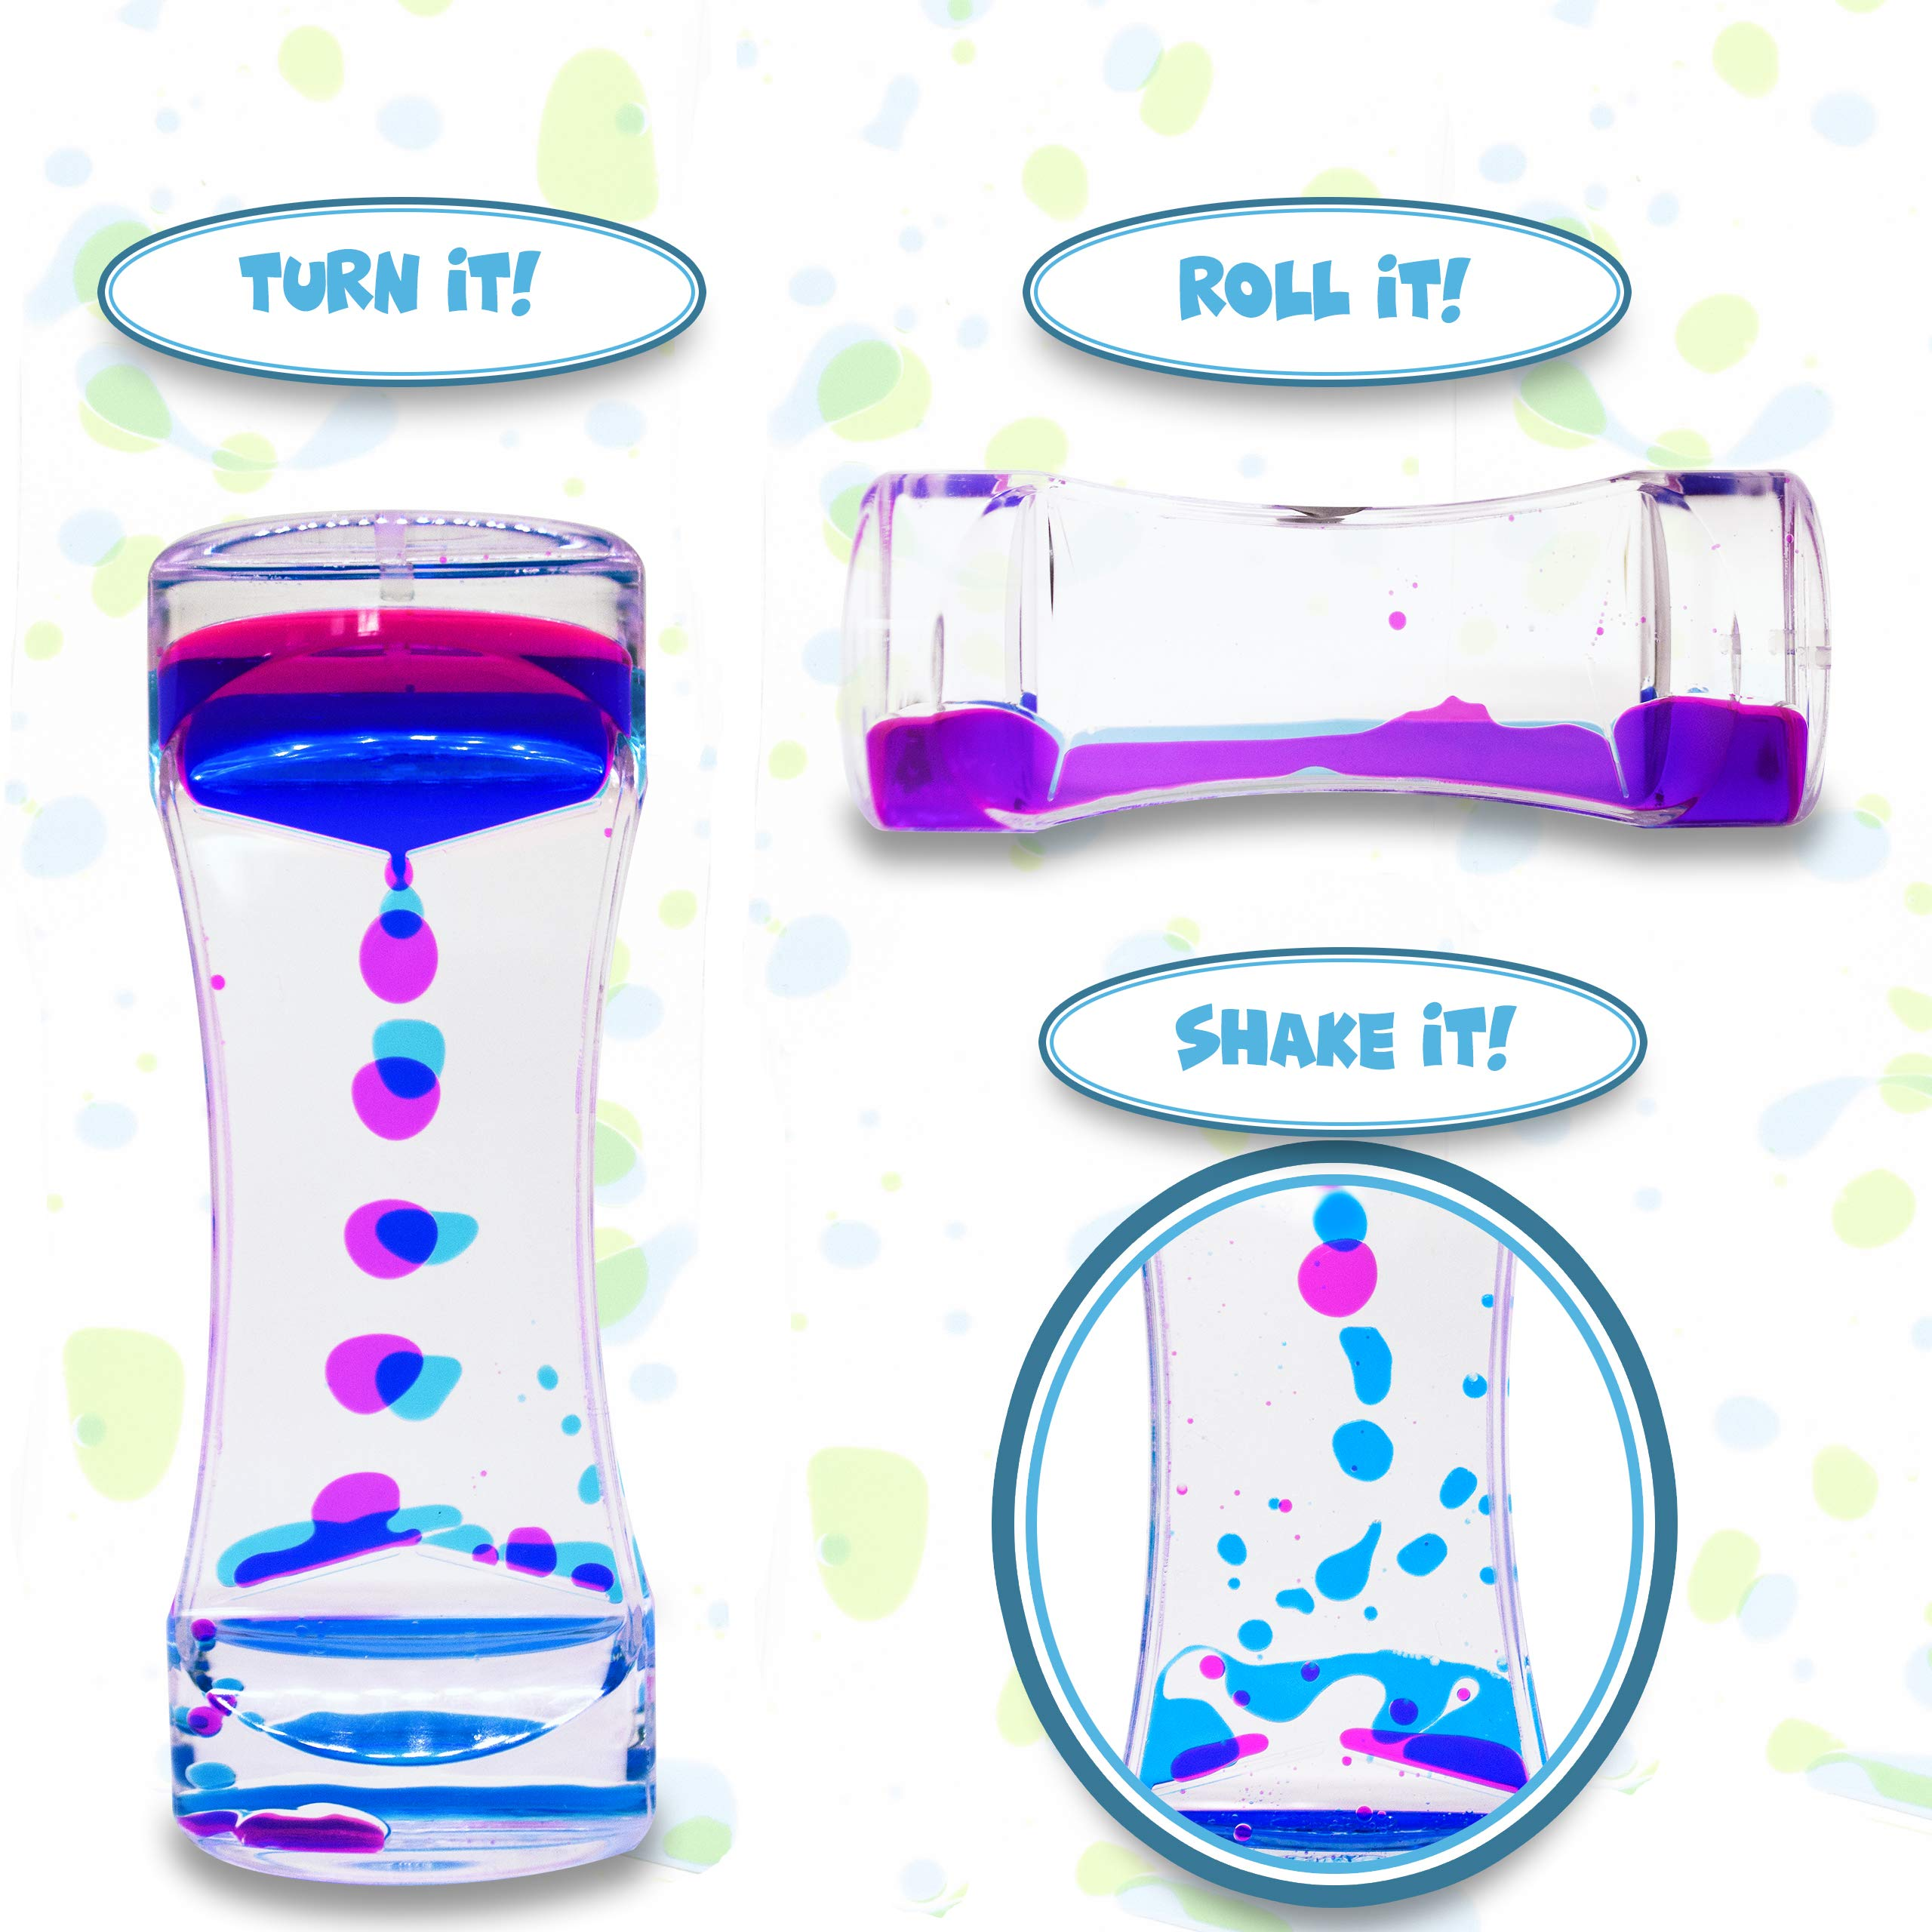 HeyWhey- Liquid Motion Bubbler Timer, 3-Pack Bundle Great for Gifts Parties Holidays, Calm and Relaxing Novelty Desk Toy, Sensory and Fidget Toys for Anxiety Autism ADHD Stress Relief Kids and Adults, by HeyWhey Toys (Image #7)